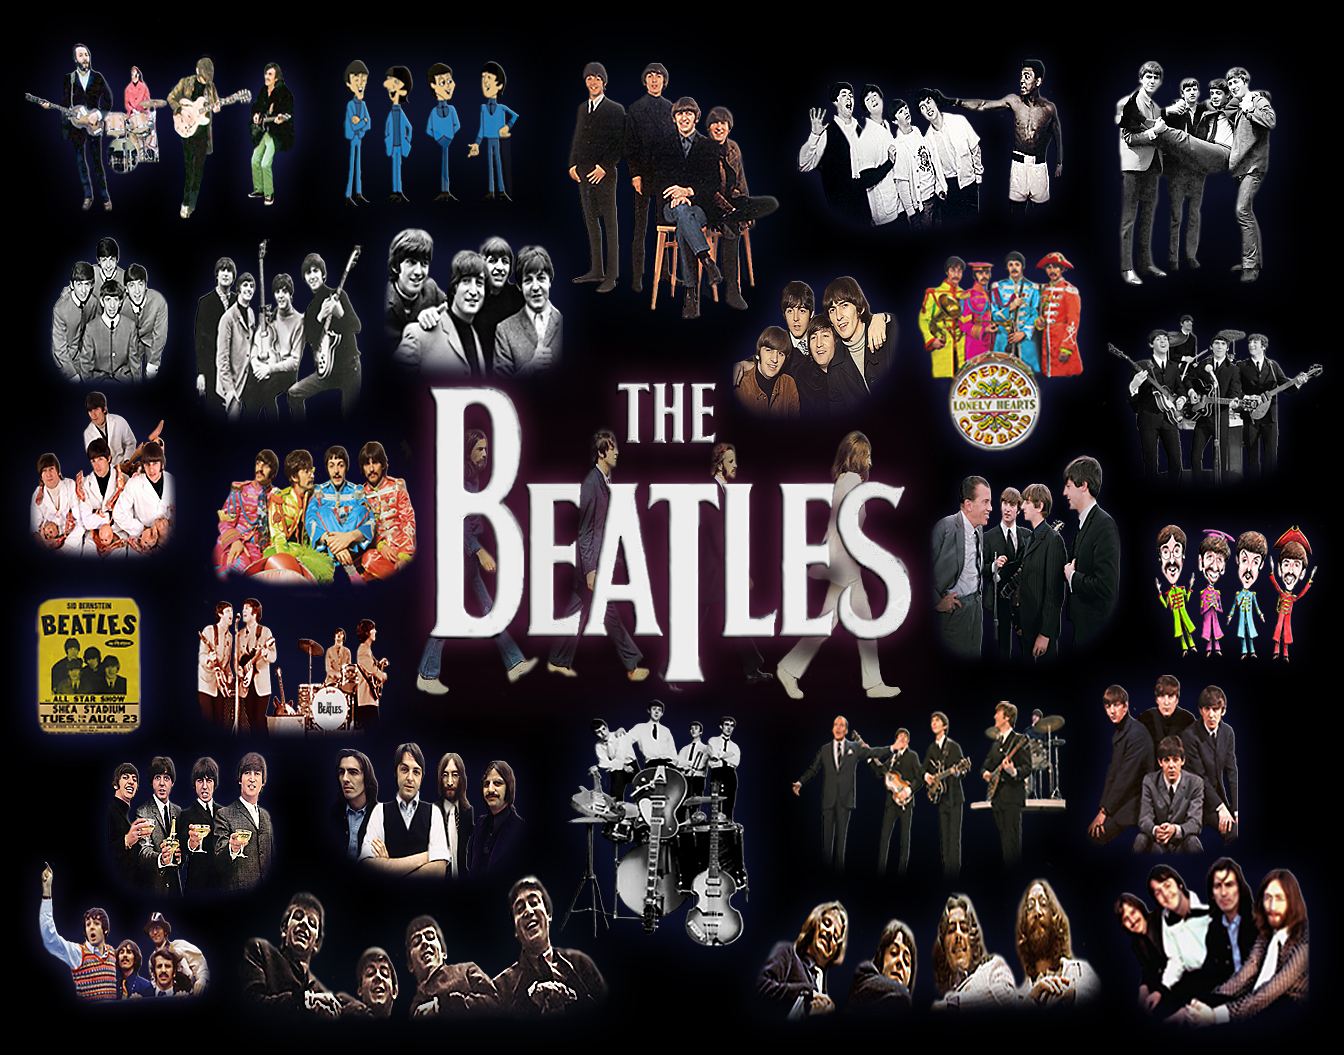 The Beatles Images Collage HD Wallpaper And Background Photos